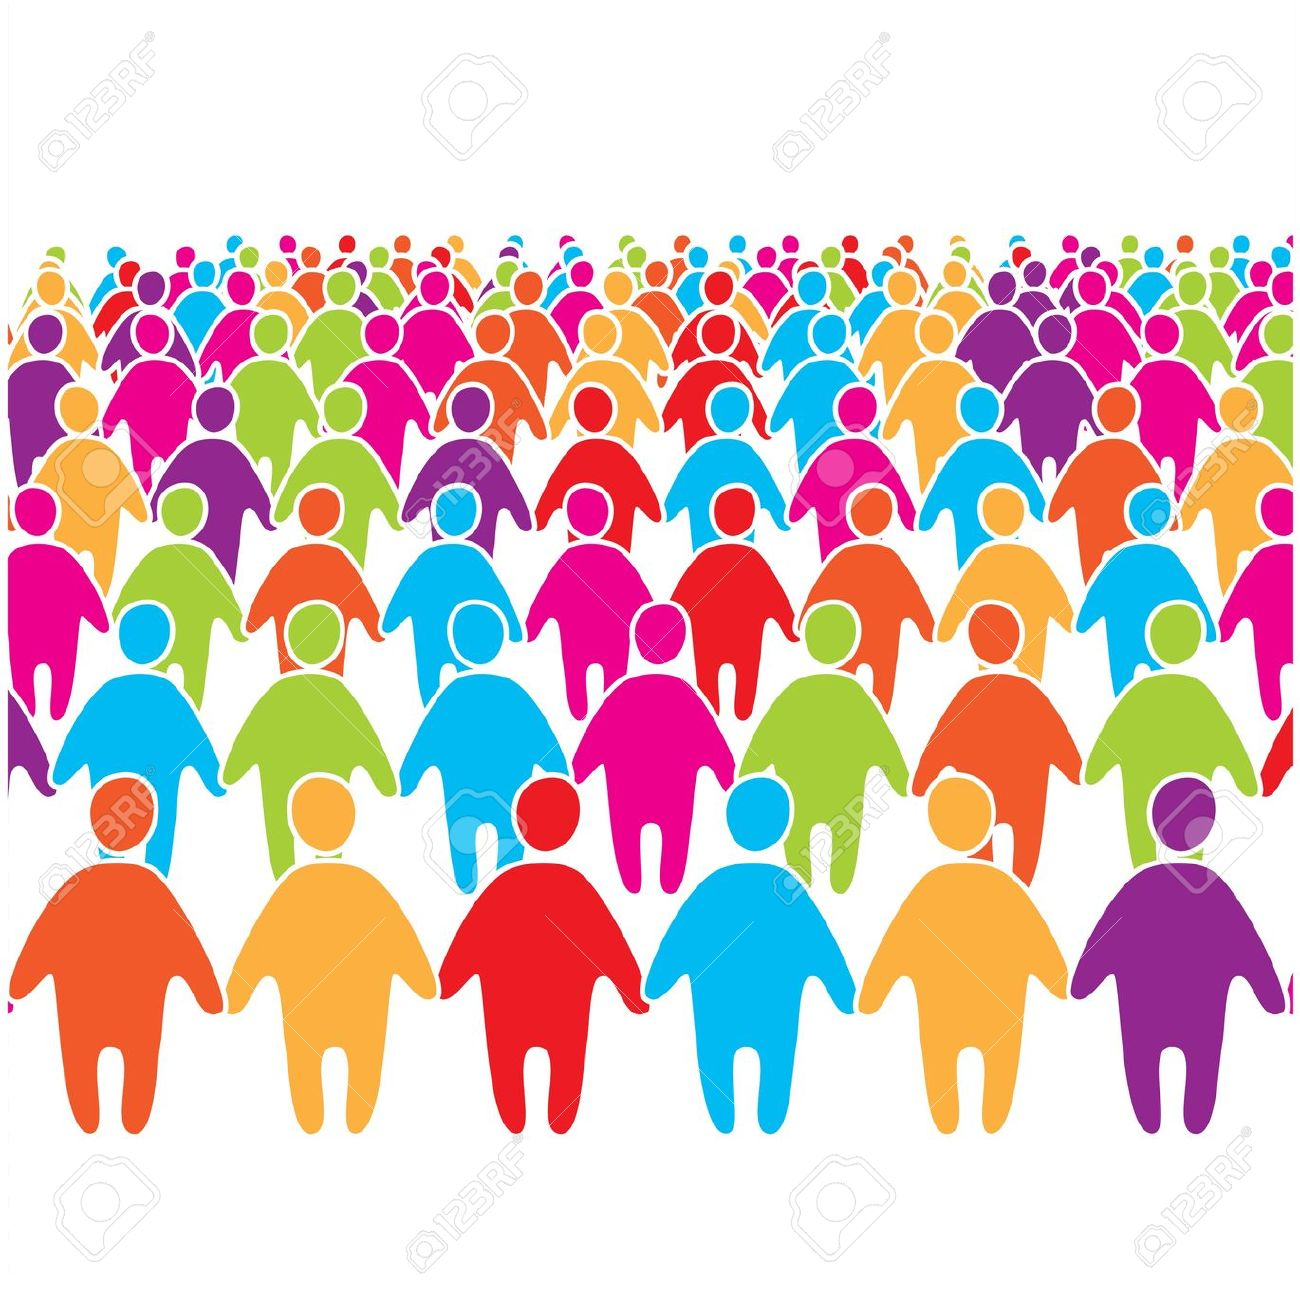 Crowd clipart Free (6851) people Clipart Crowds